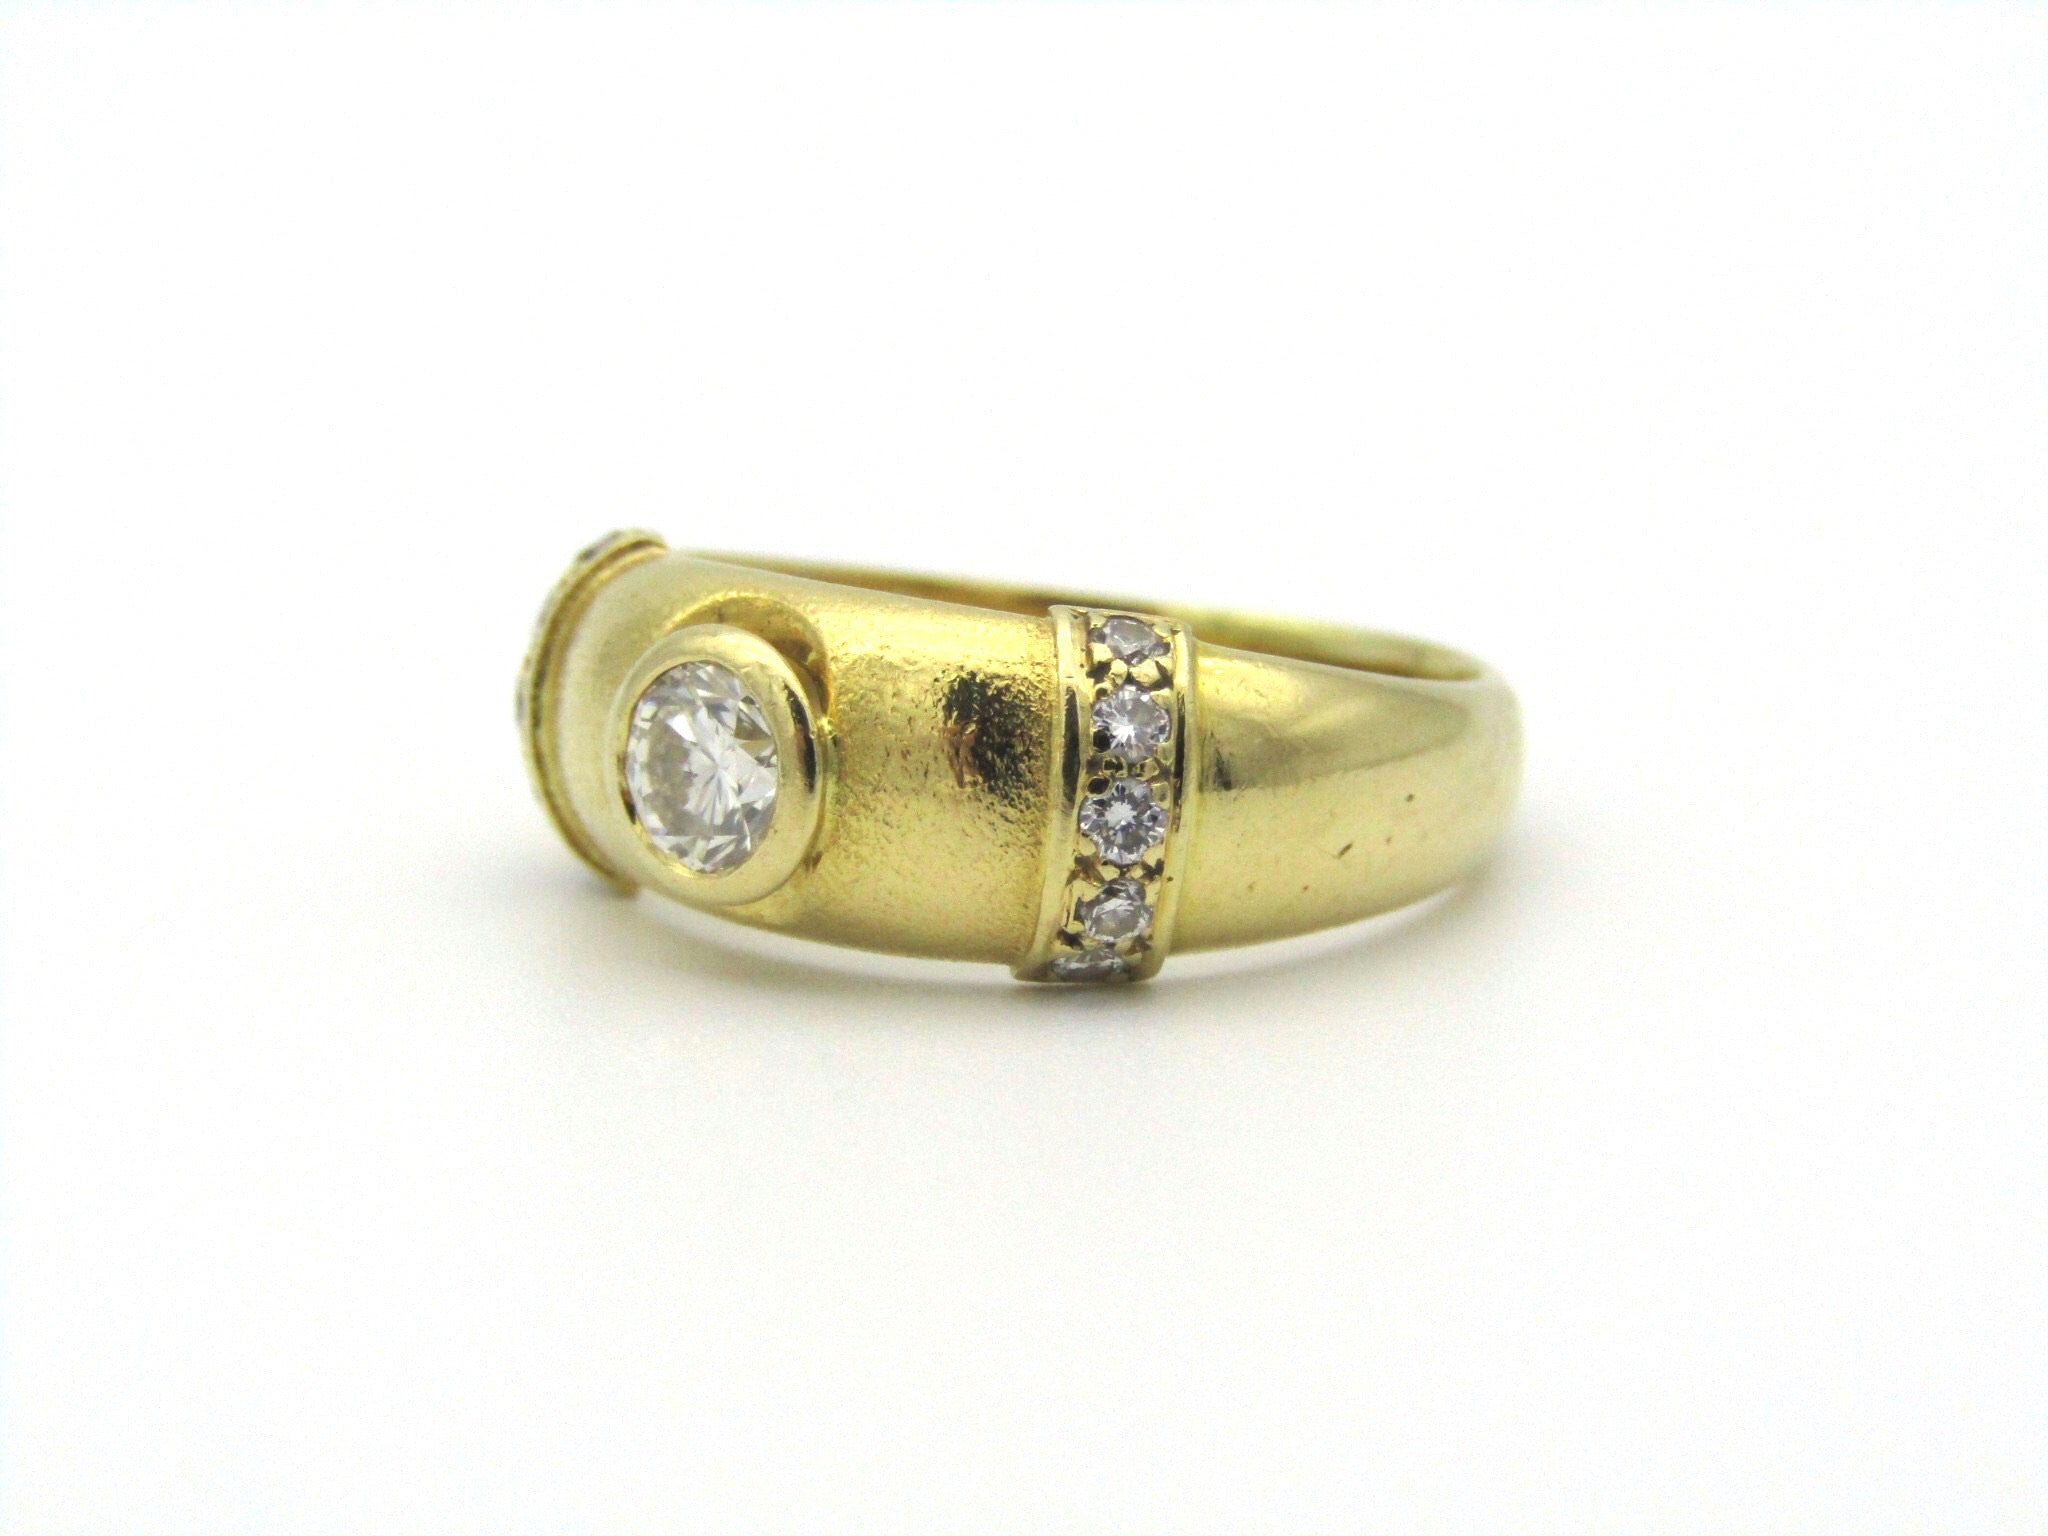 18kt gold diamond ring by Friedman's.